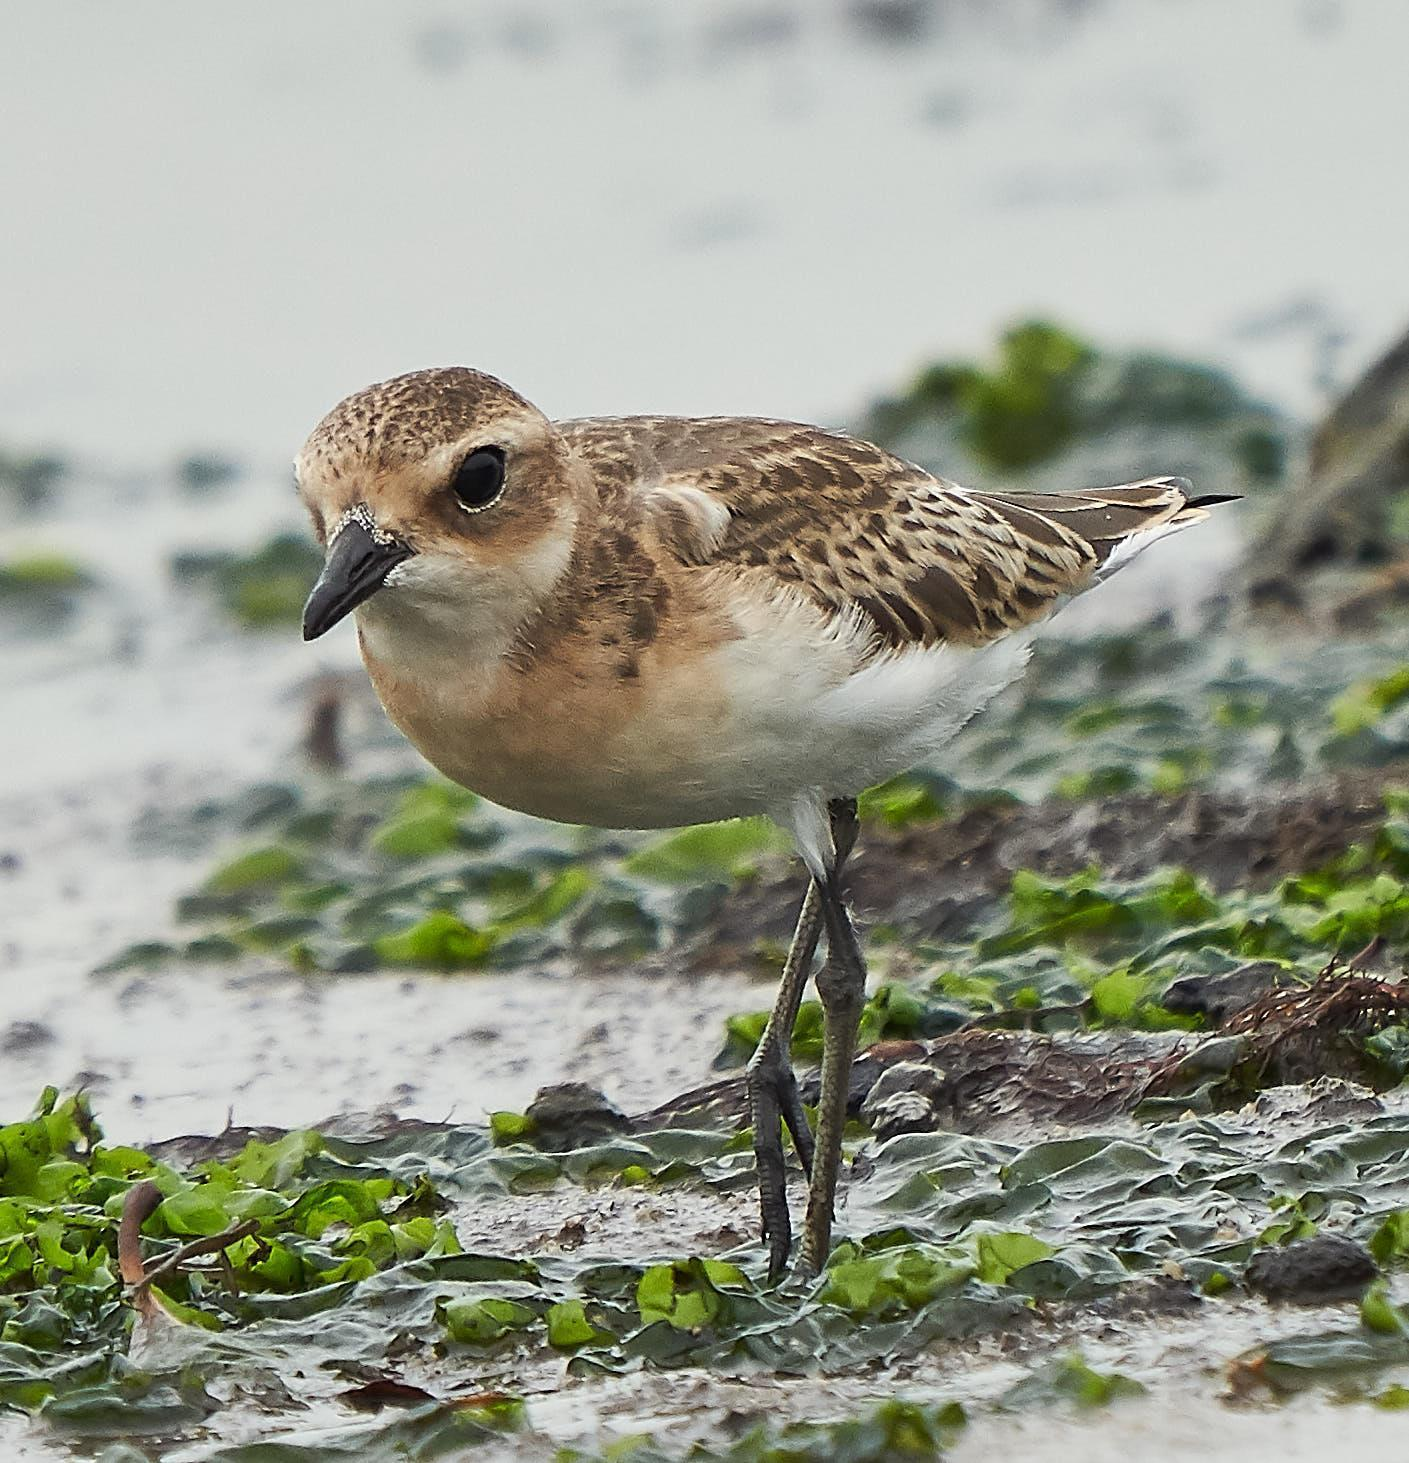 Lesser Sand-Plover Photo by Steven Cheong